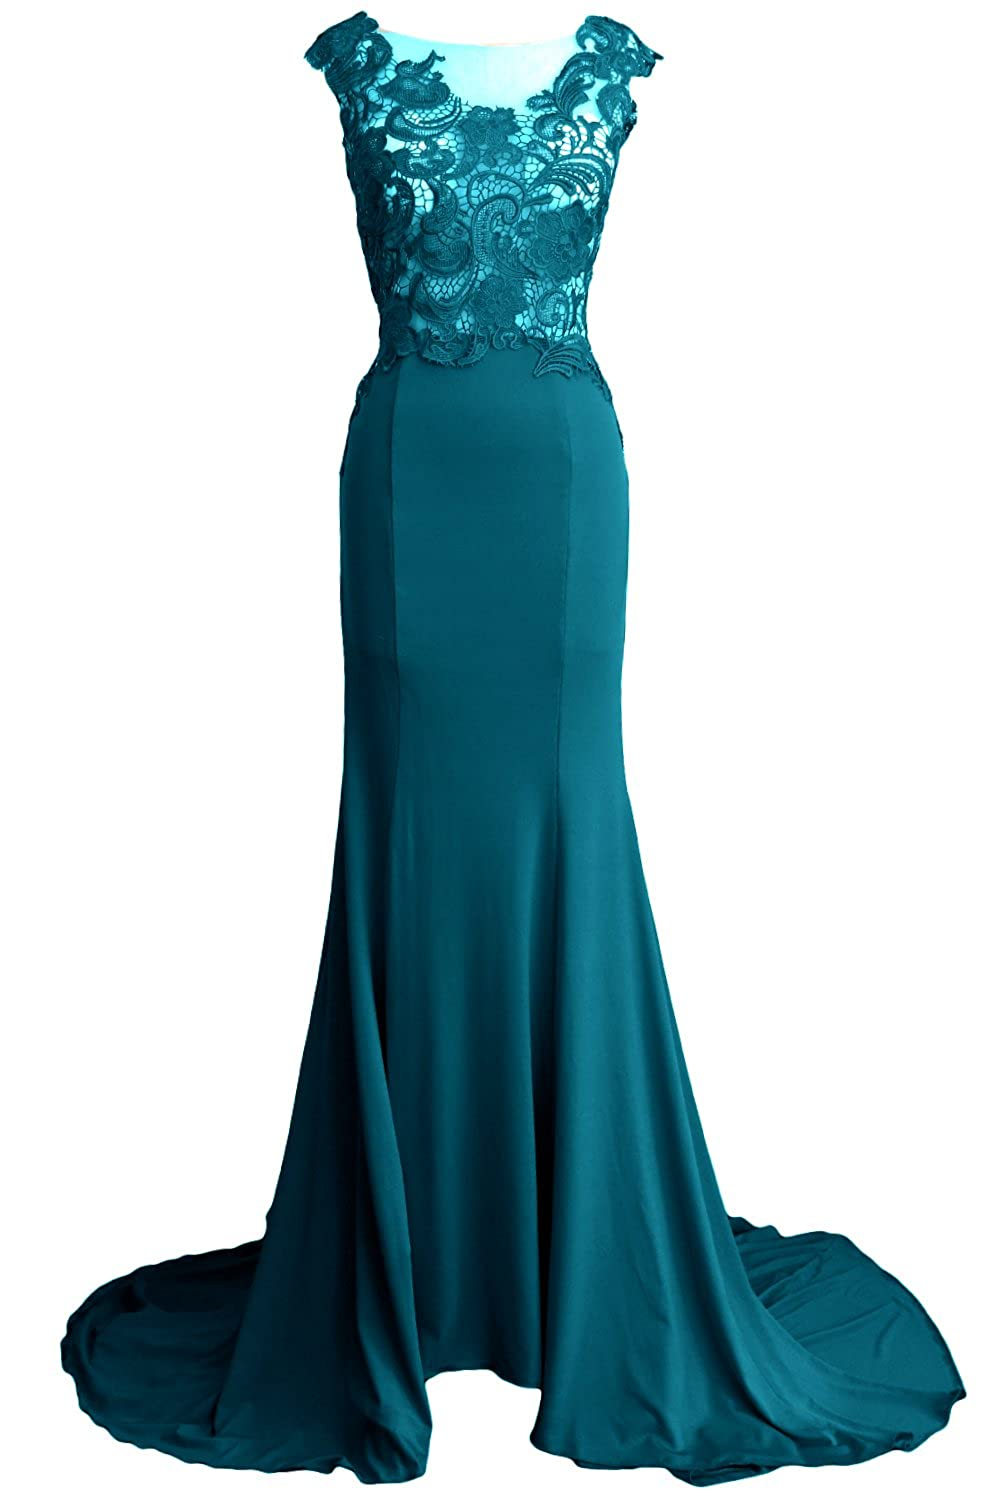 MACloth Women Mermaid Lace Jersey Long Formal Evening Gown Wedding Party Dress